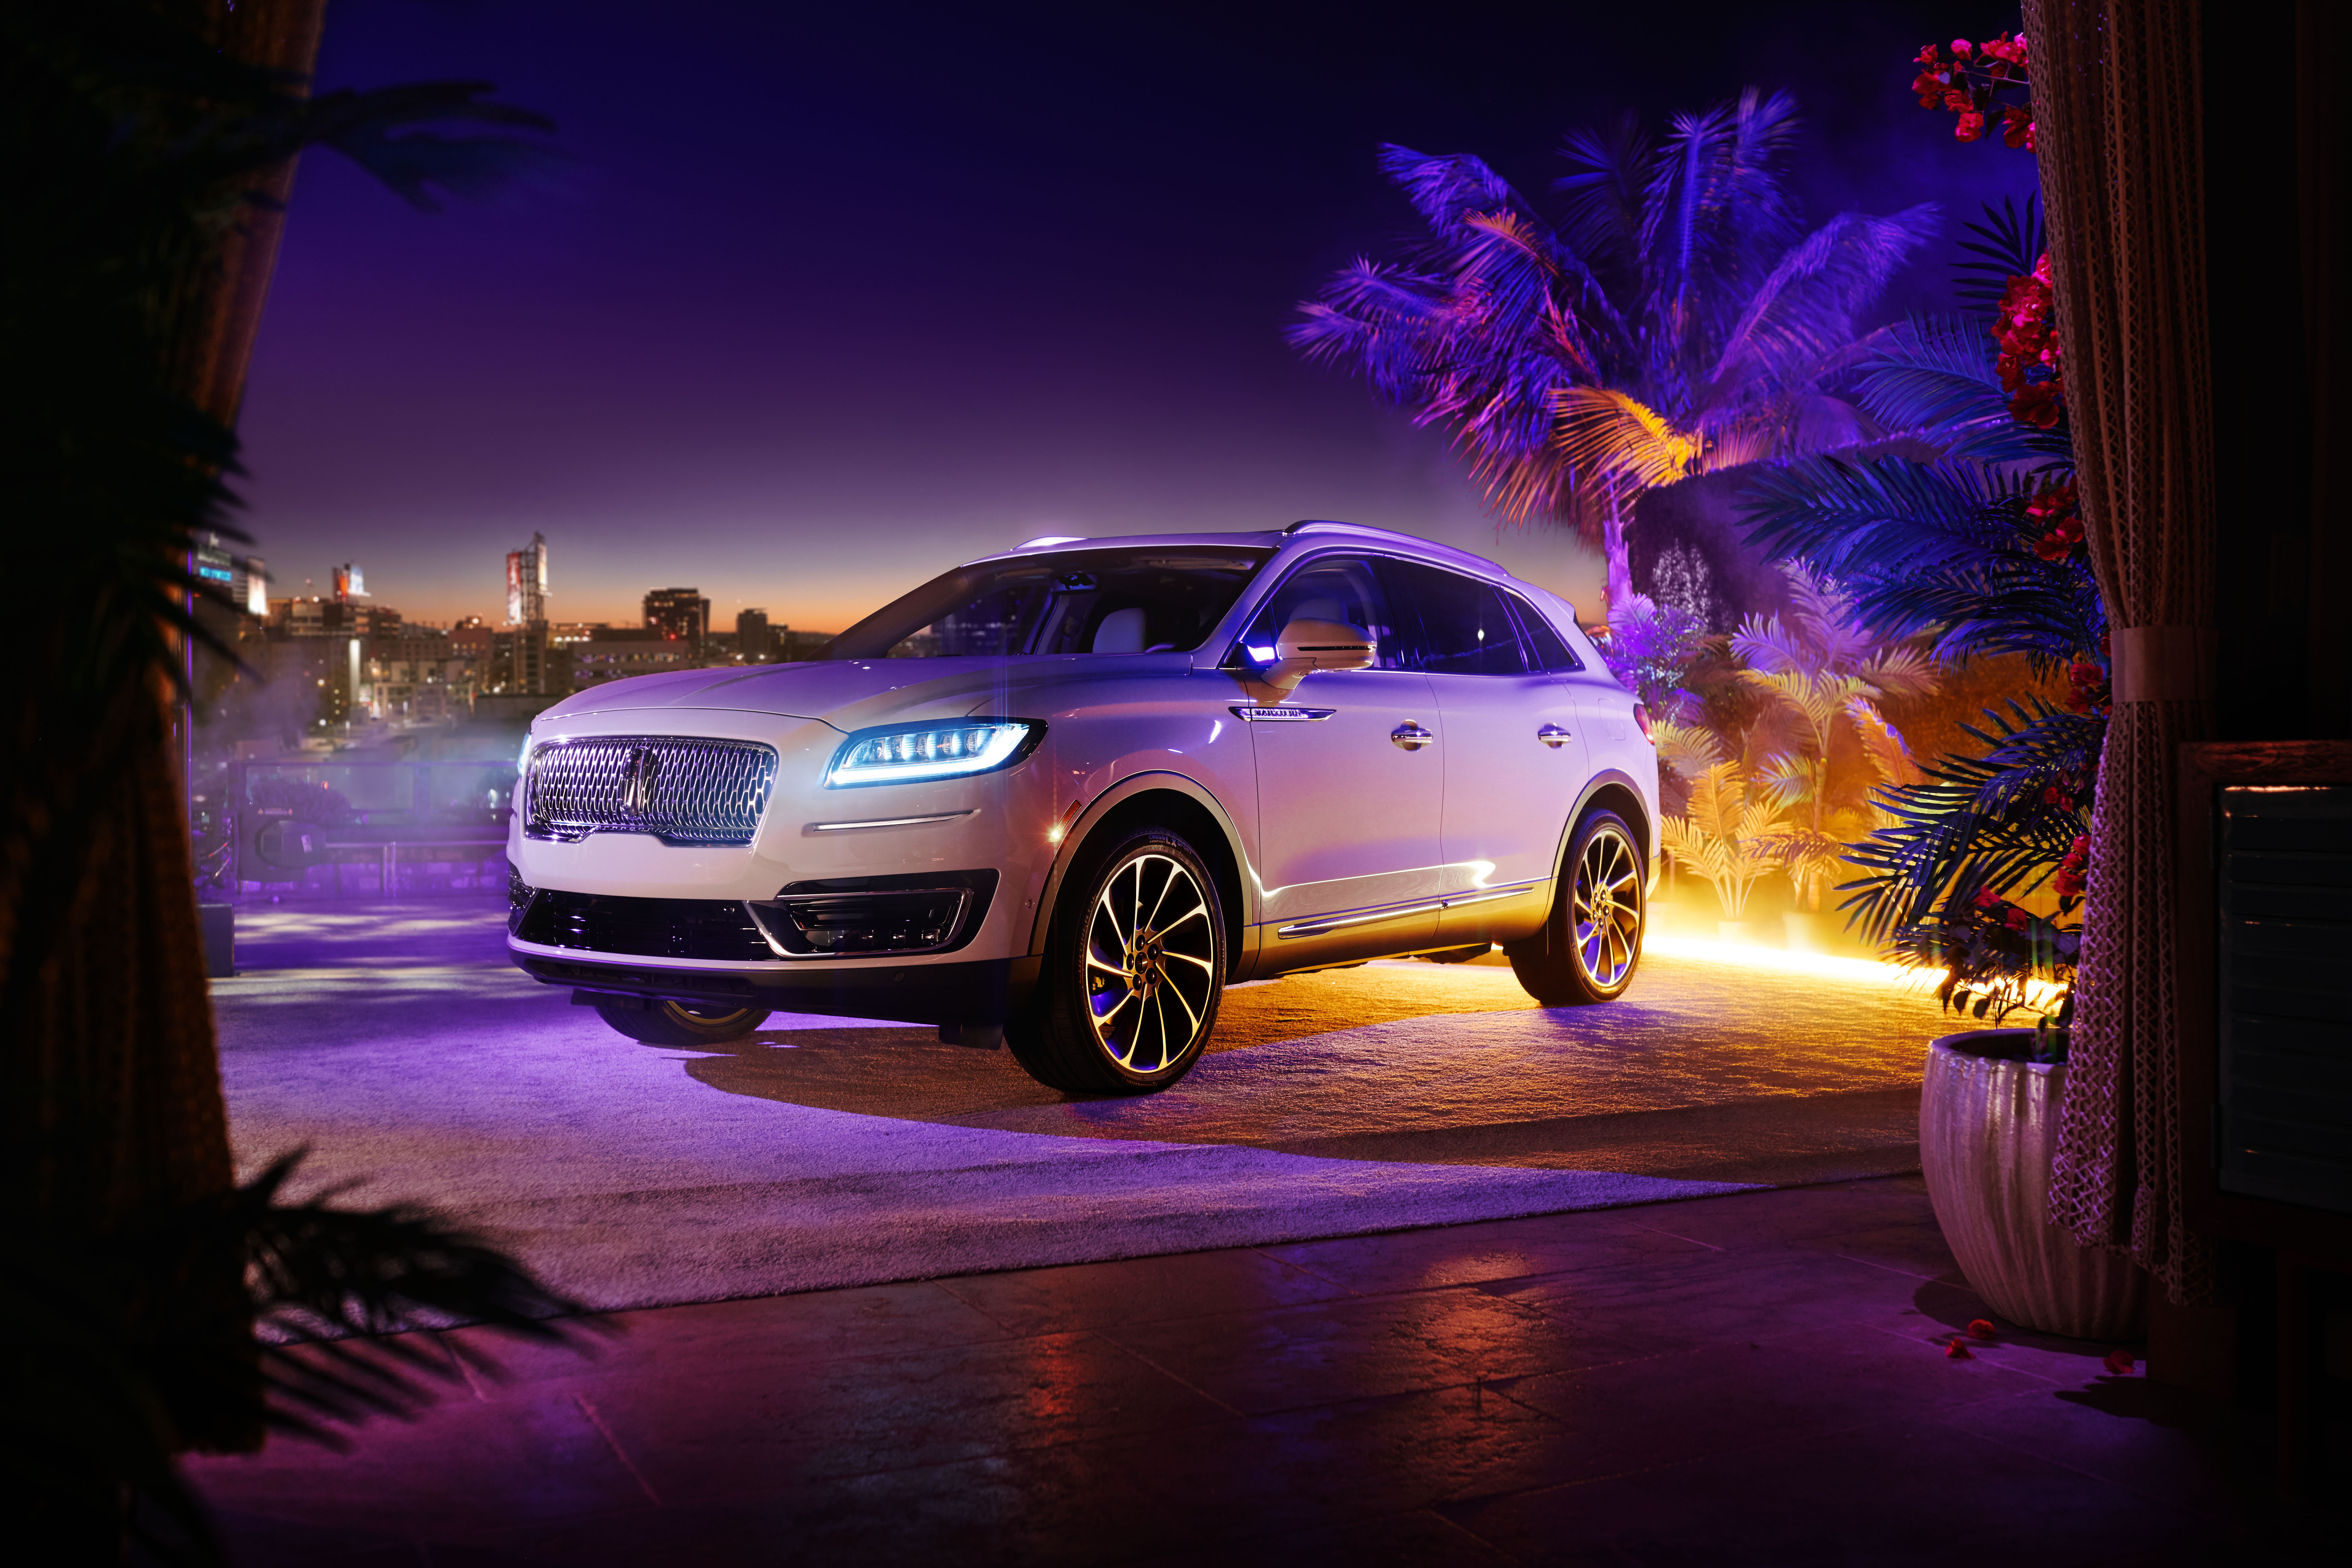 The 2019 Lincoln Nautilus